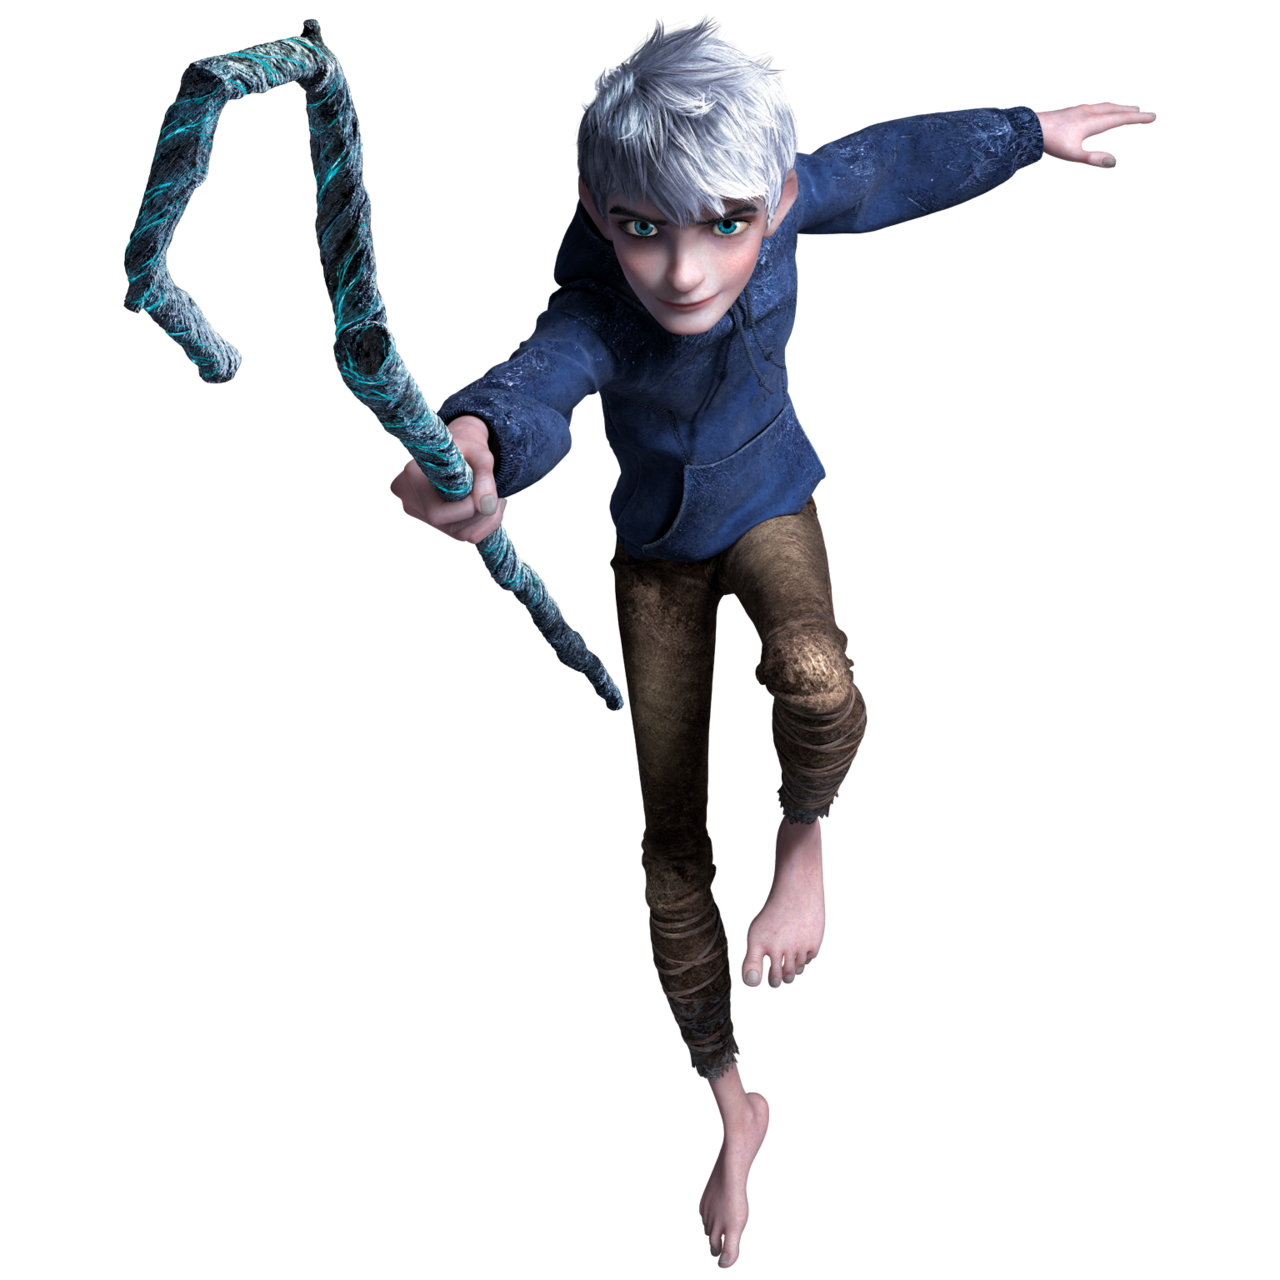 why don't you believe me?Jack Frost Rise Of The Guardians Human